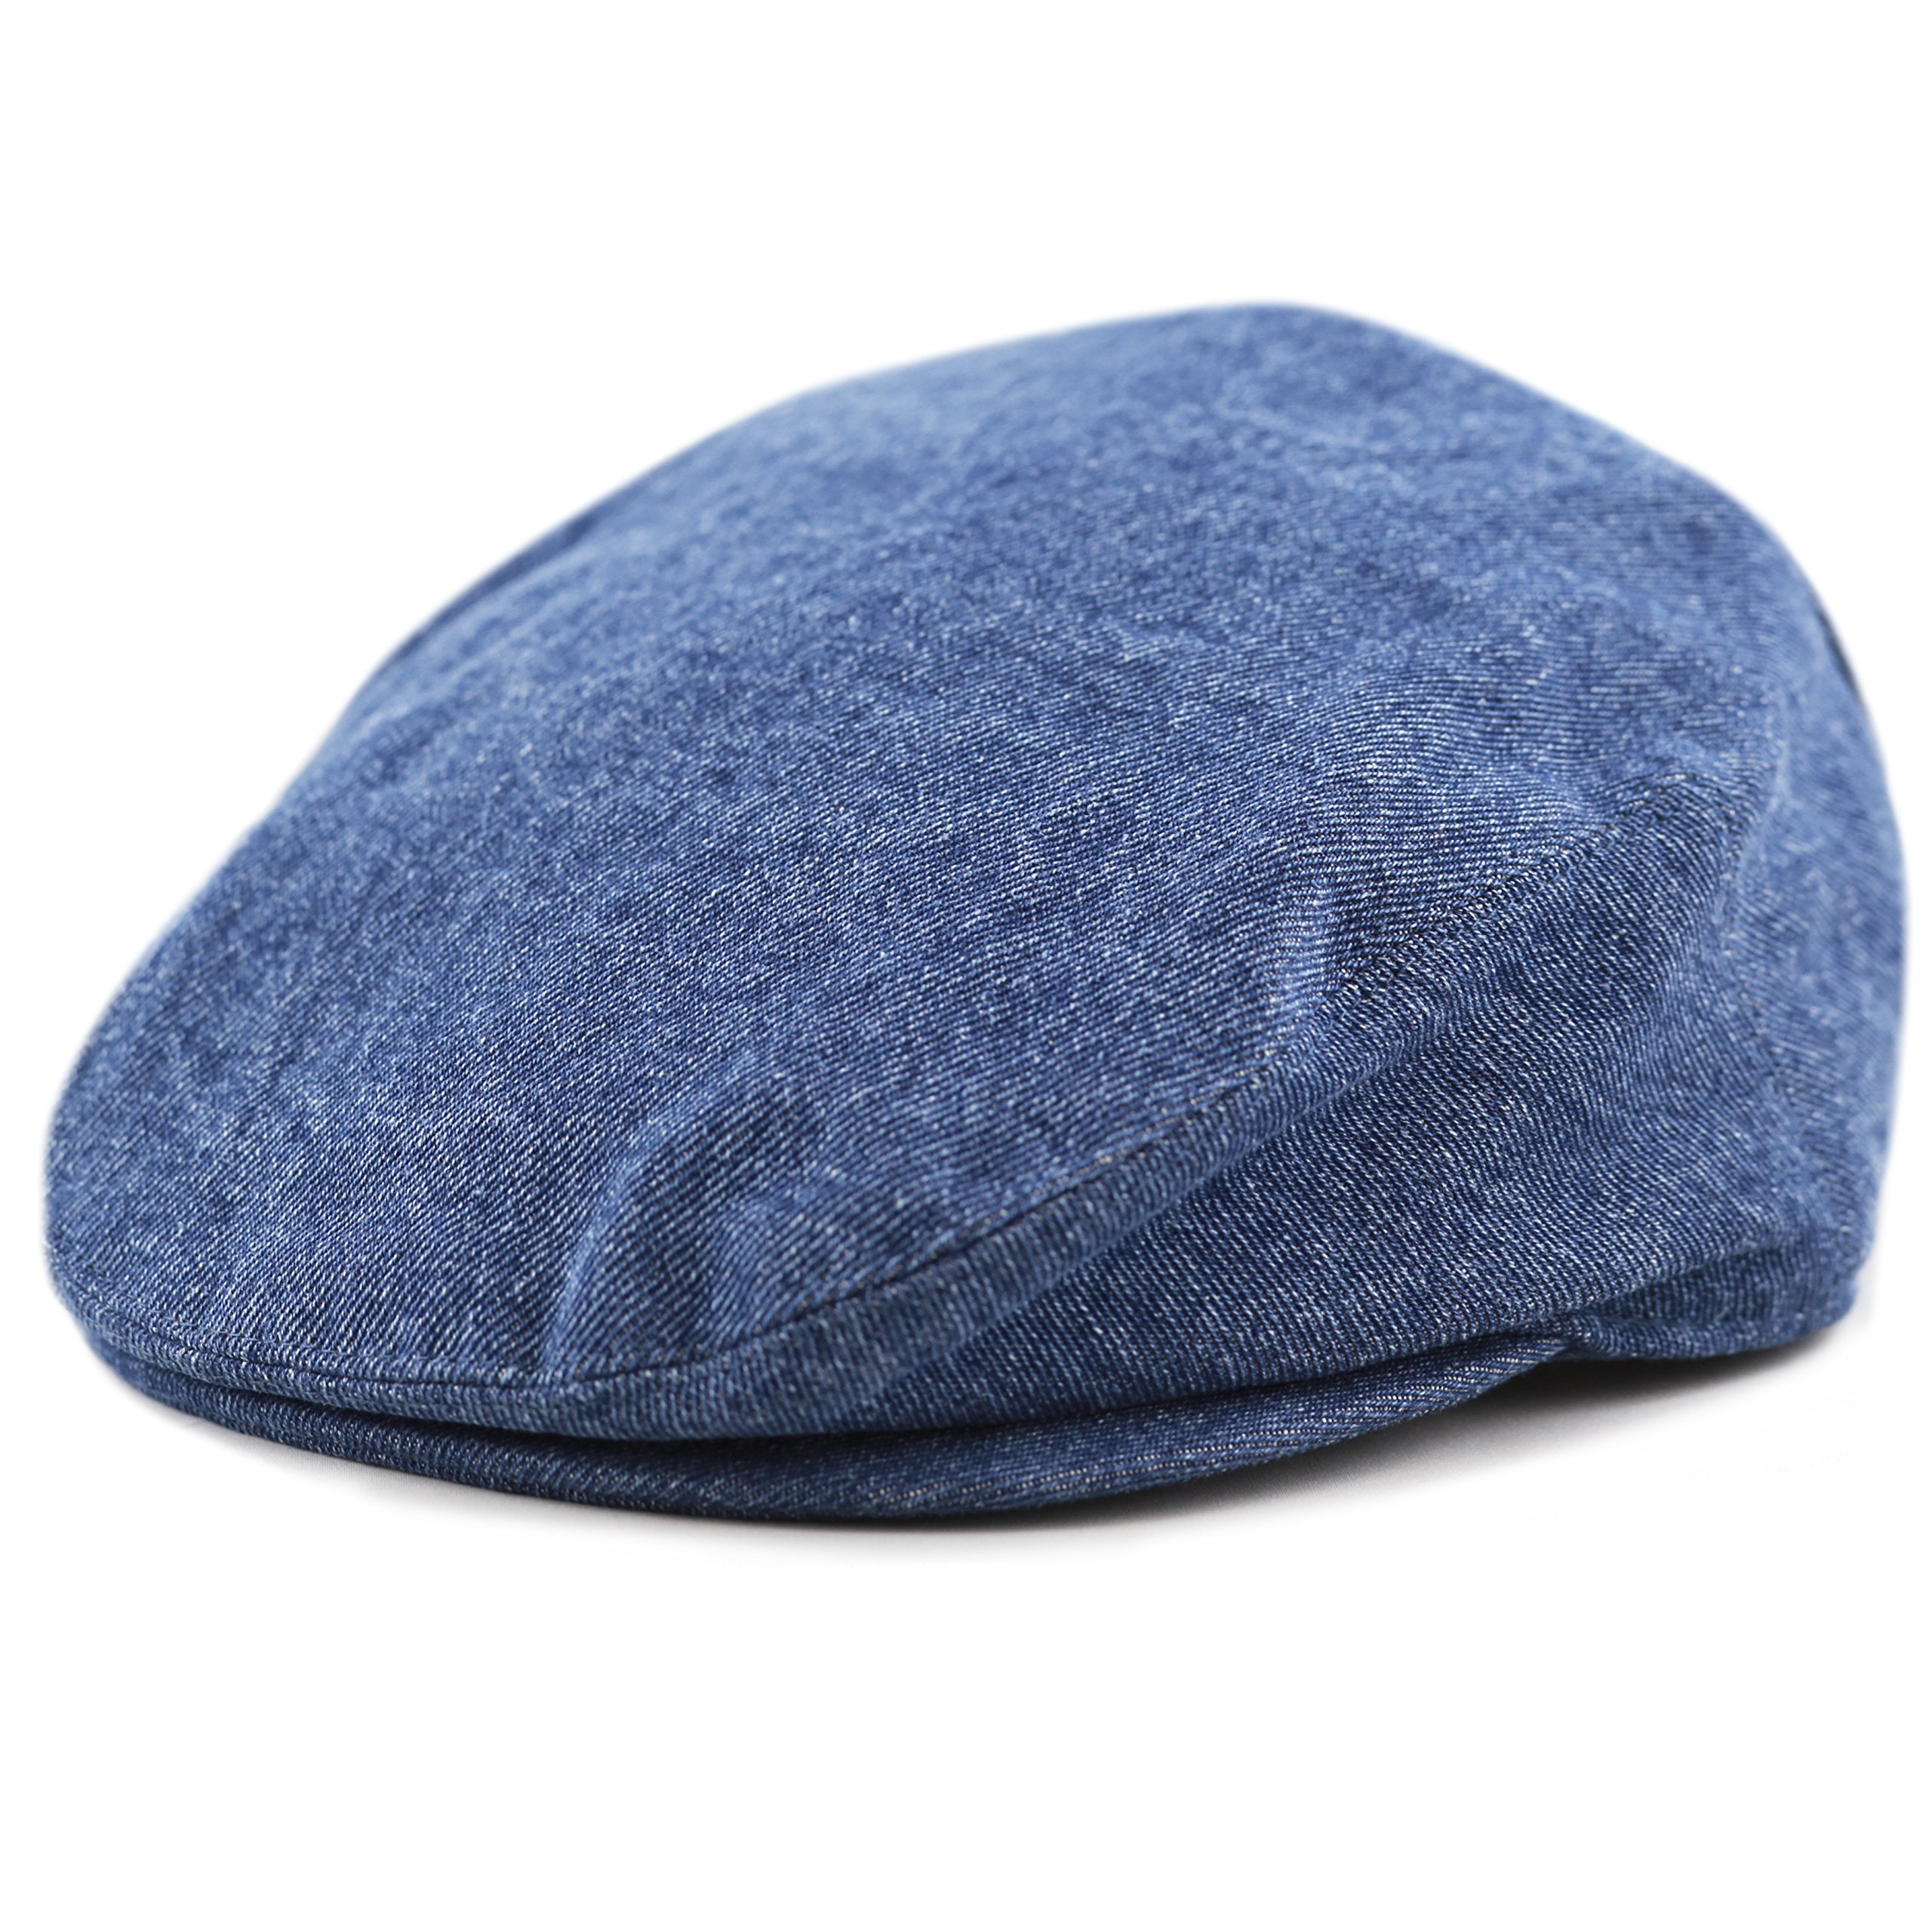 c9988a77972 THE HAT DEPOT Washed Denim Cotton newsboy IVY Cap Style Hat - Denim.Fit